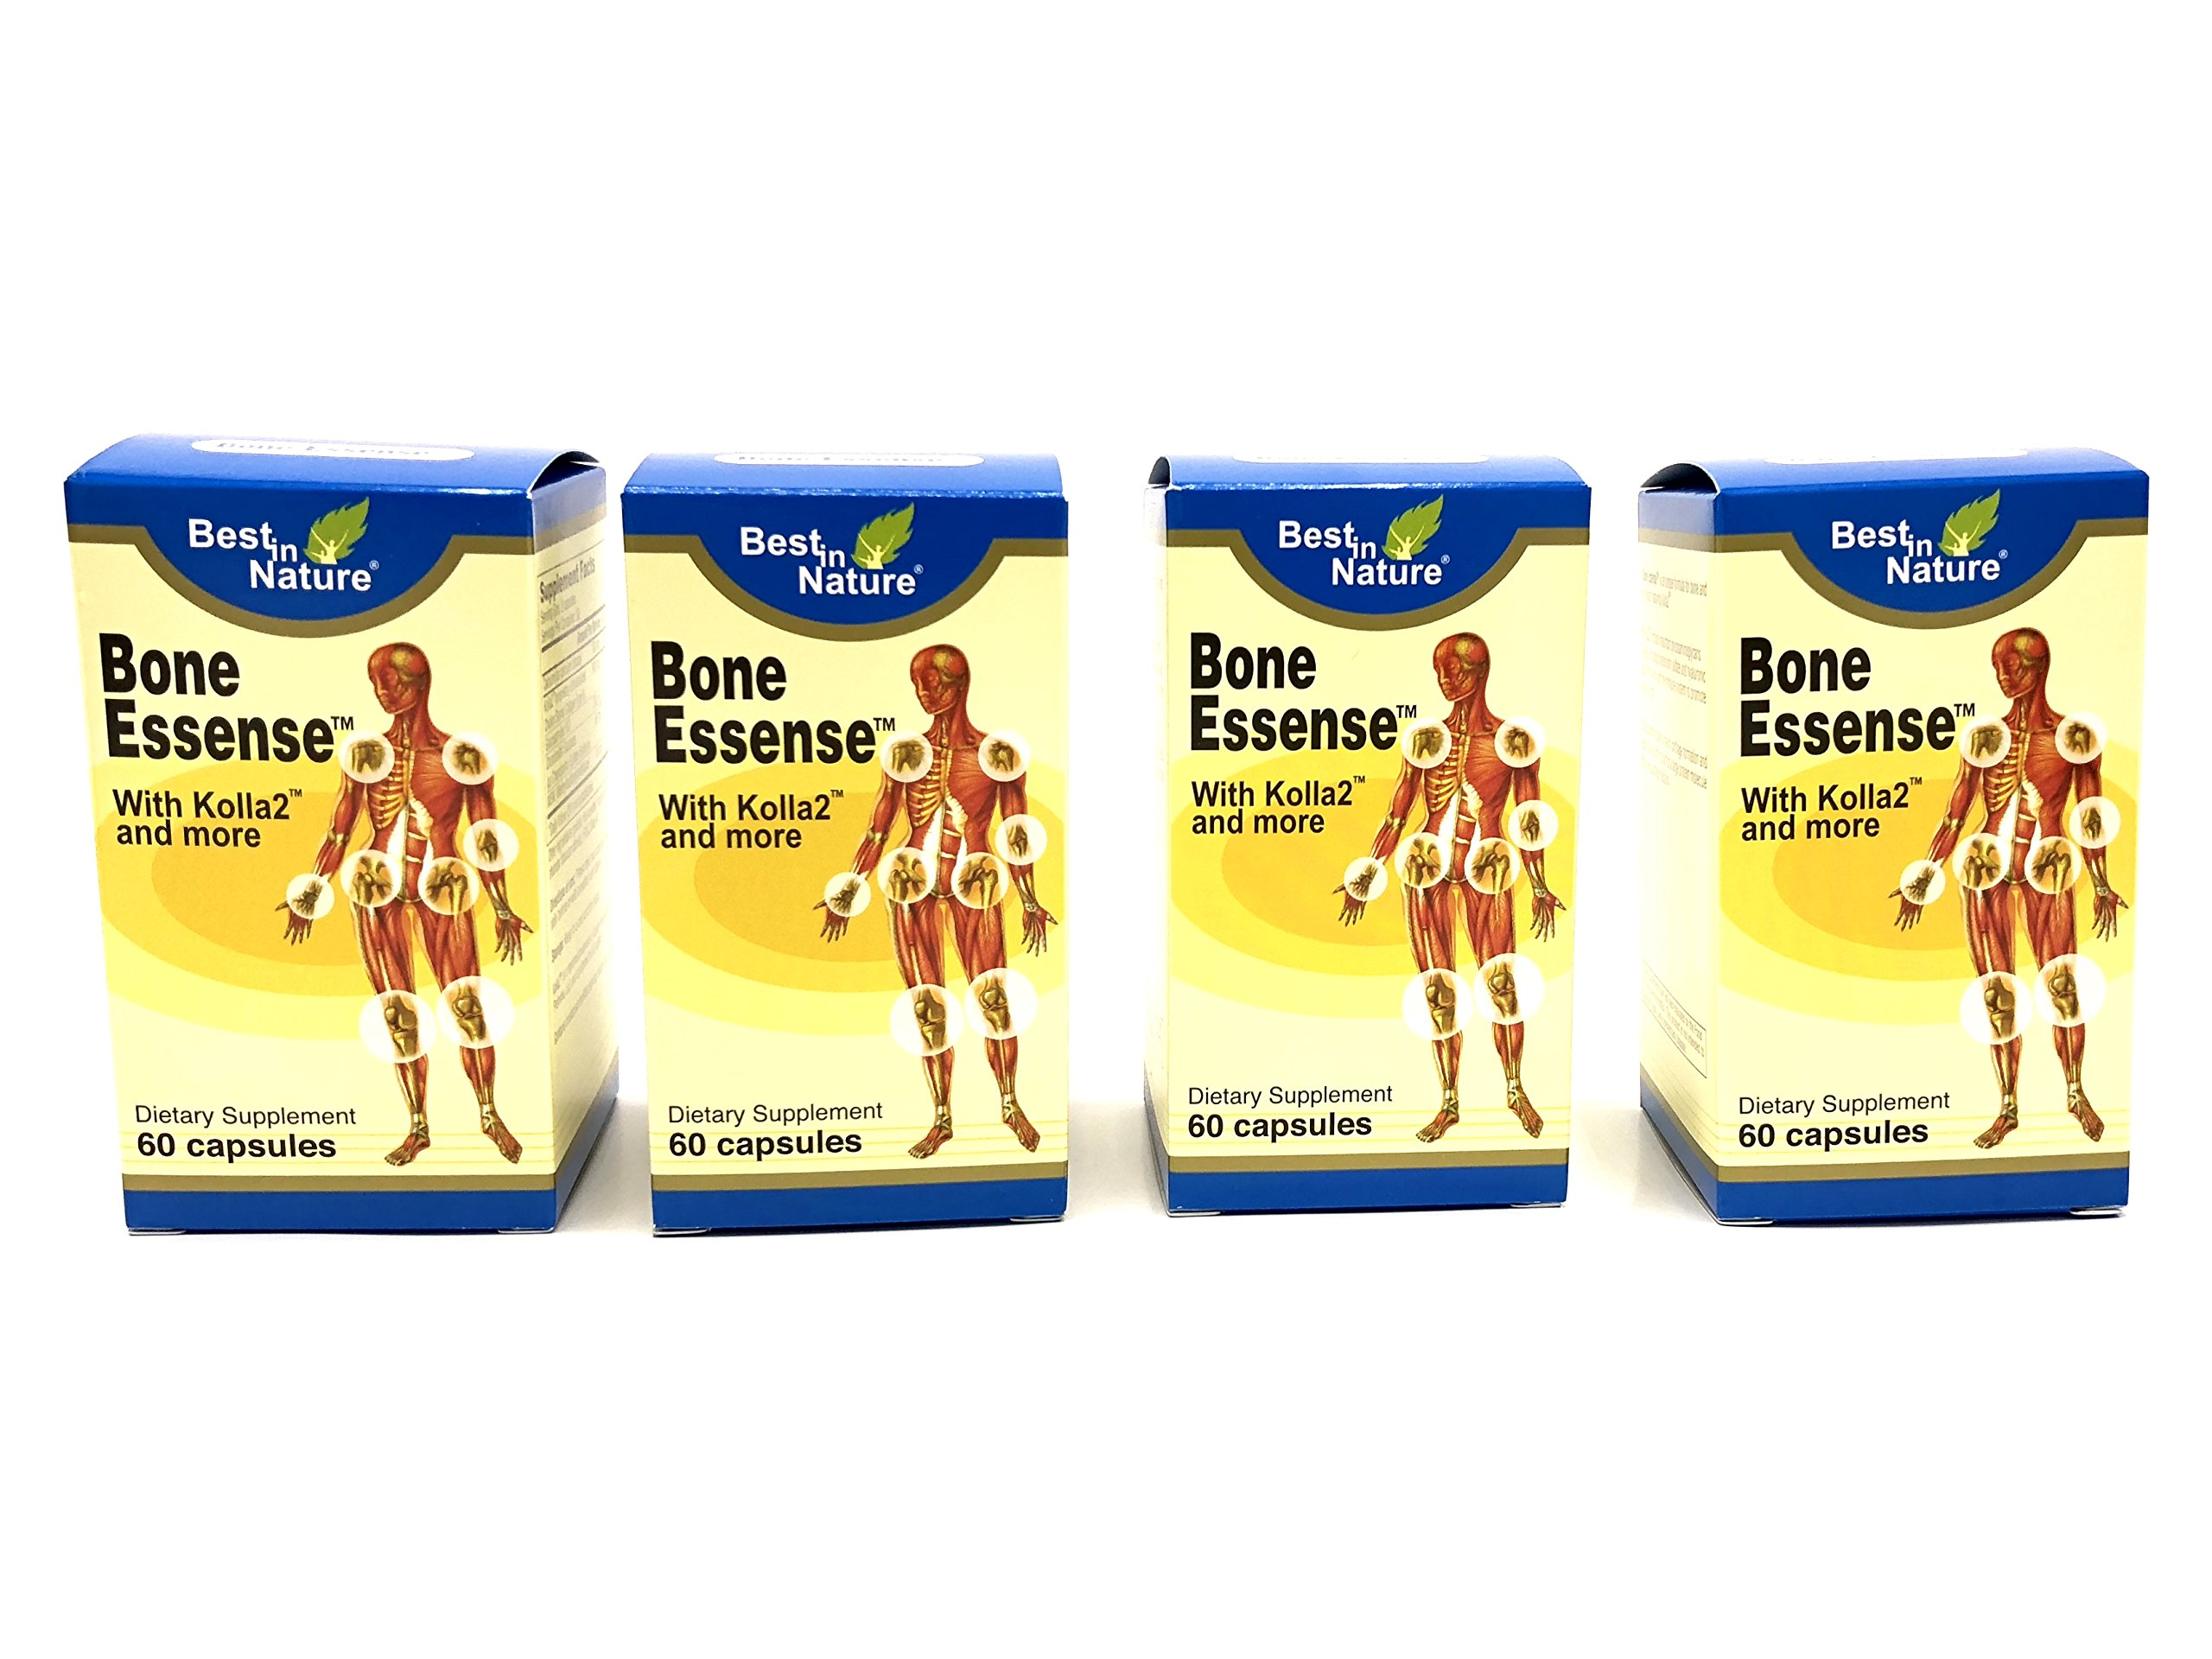 4 Bottles - Bone Essense with Kolla2 - Kolla2 300mg, Glucosamine, Chondrotin Sulphate, Calcium - 60 Capsules - Best in Nature